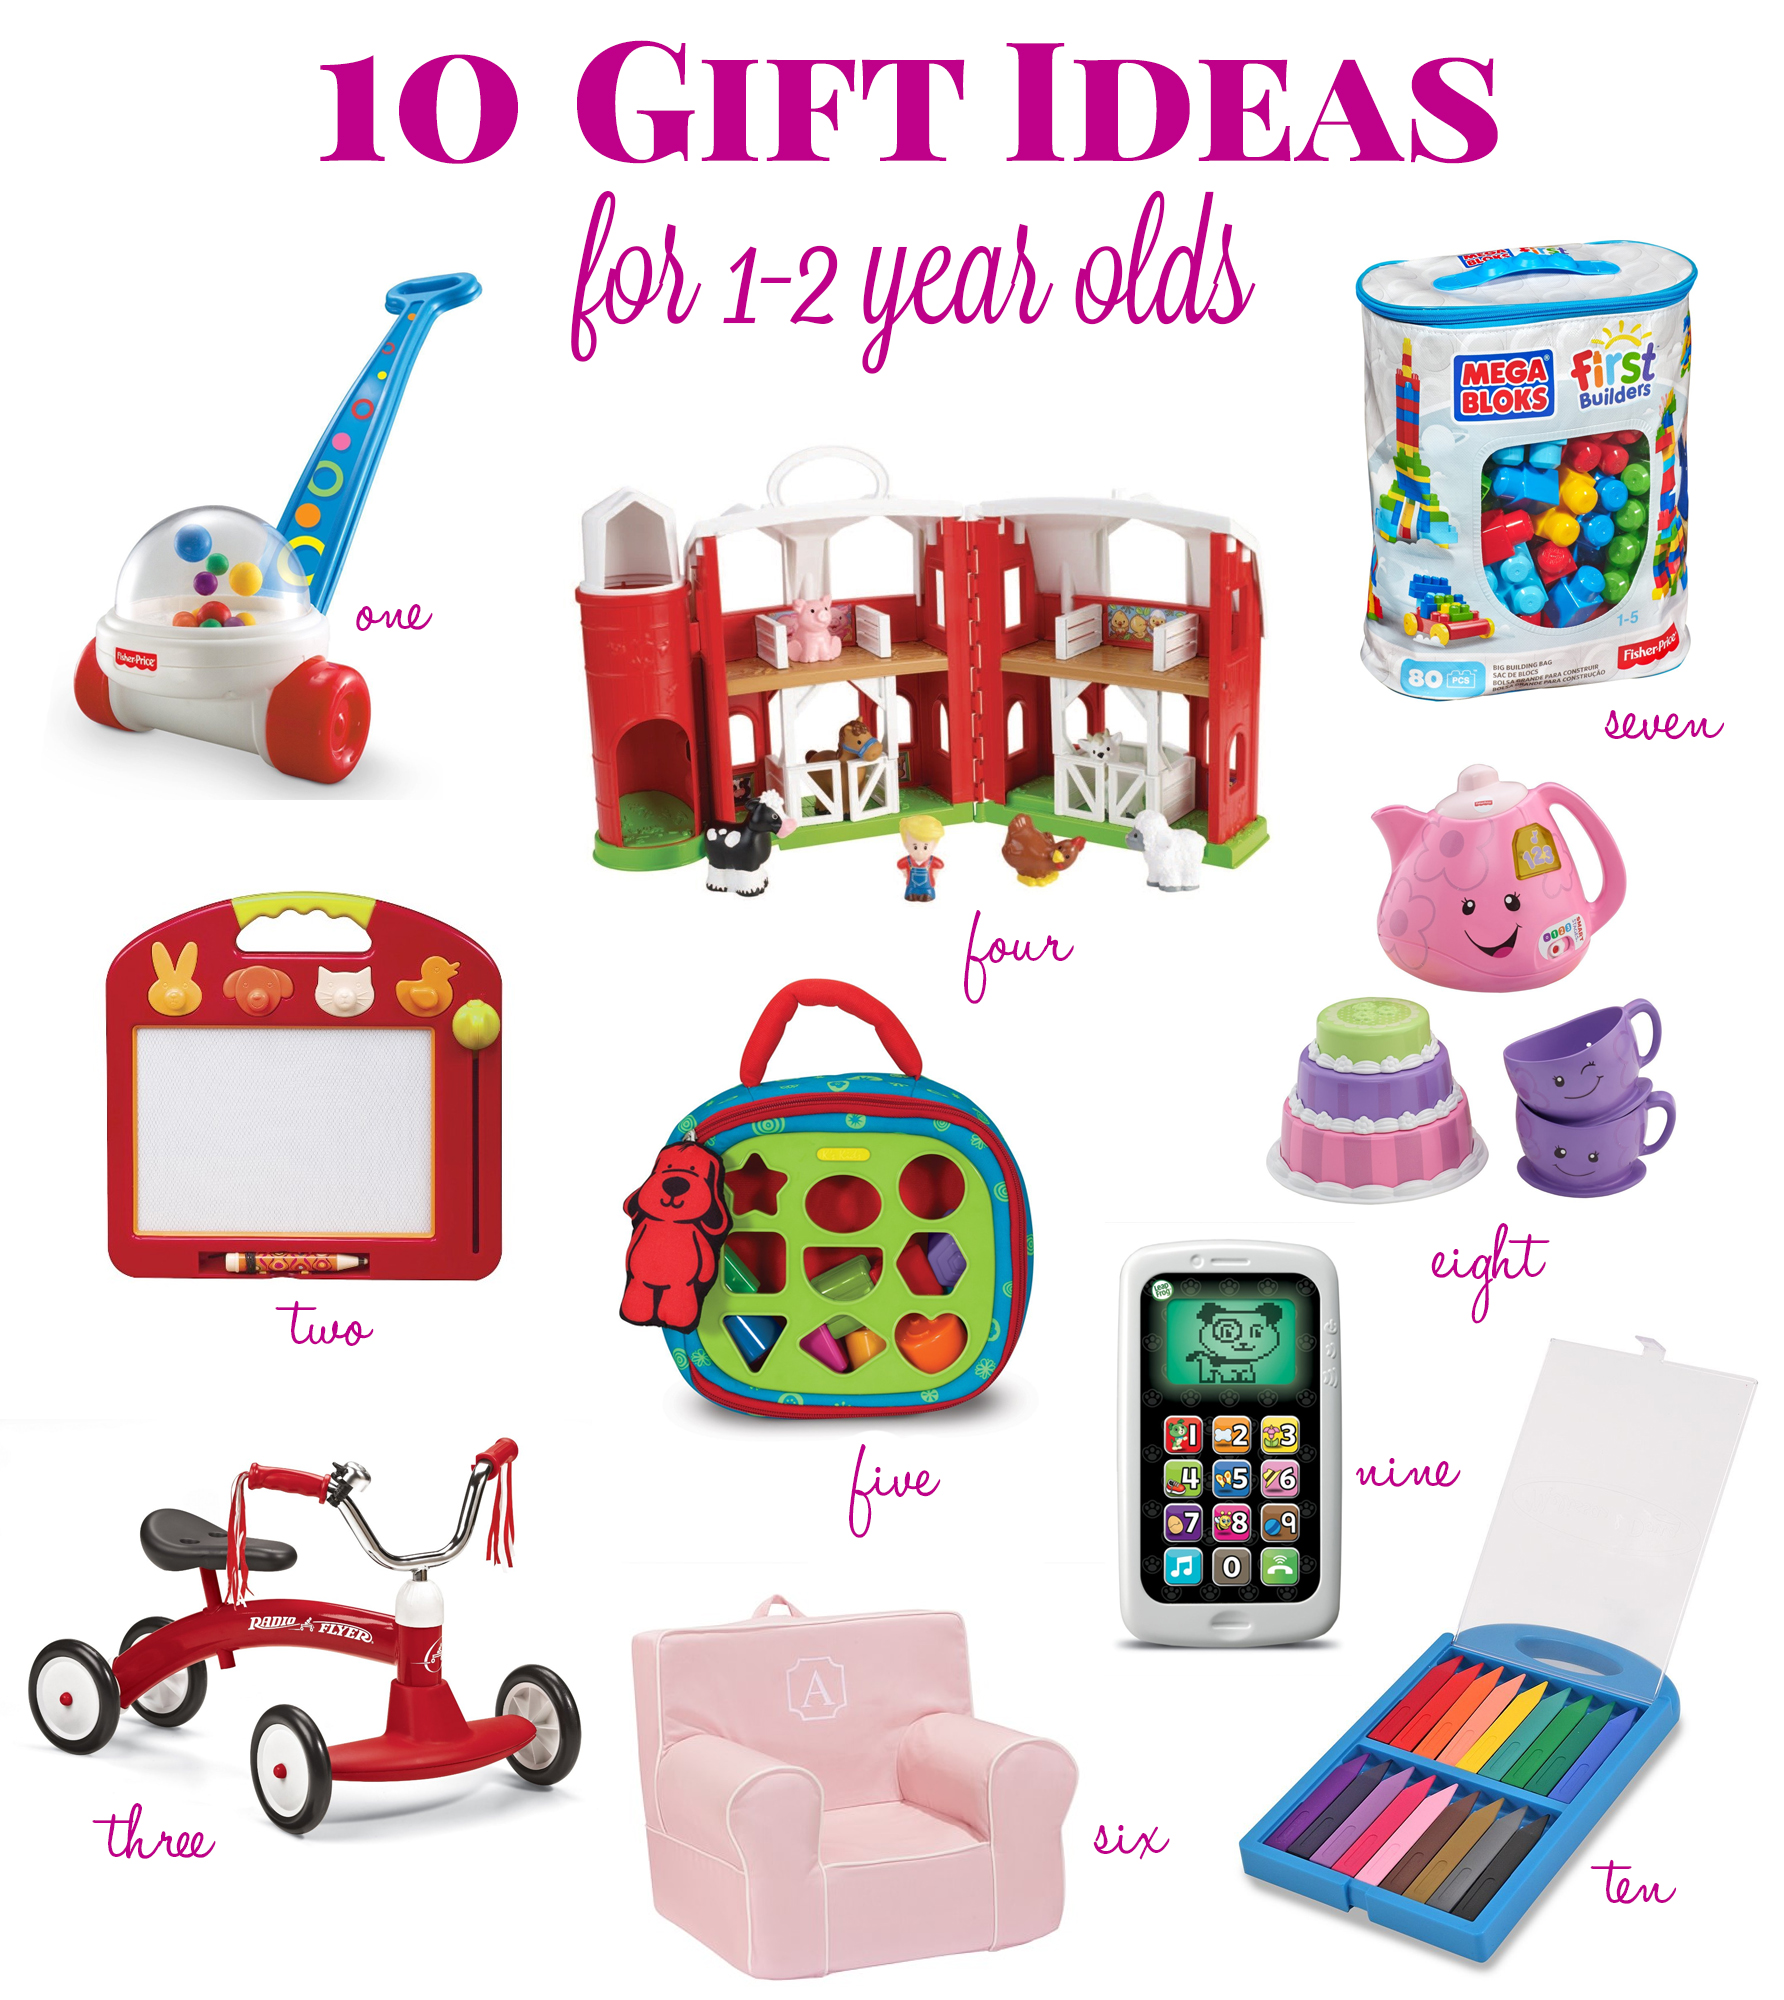 Gifts For 1 Yr Old Gift Ideas One Year